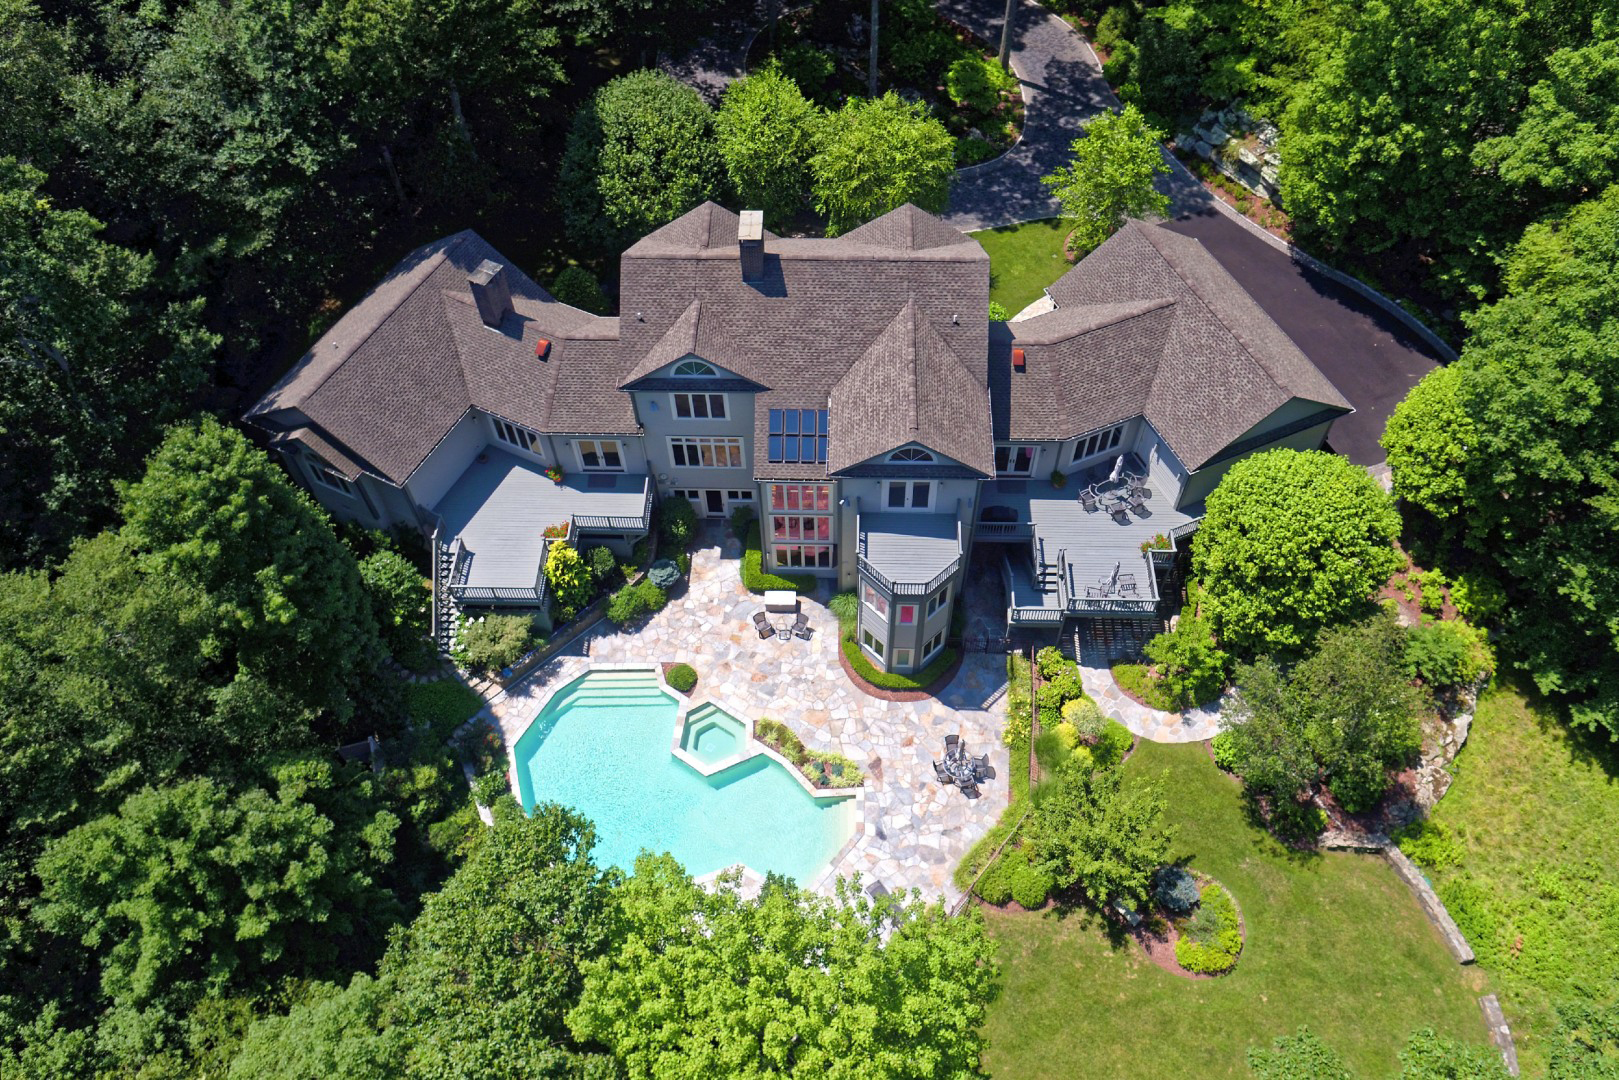 Single Family Home for Sale at A Grande Masterpiece! 328 Erskine Road Stamford, Connecticut 06903 United States